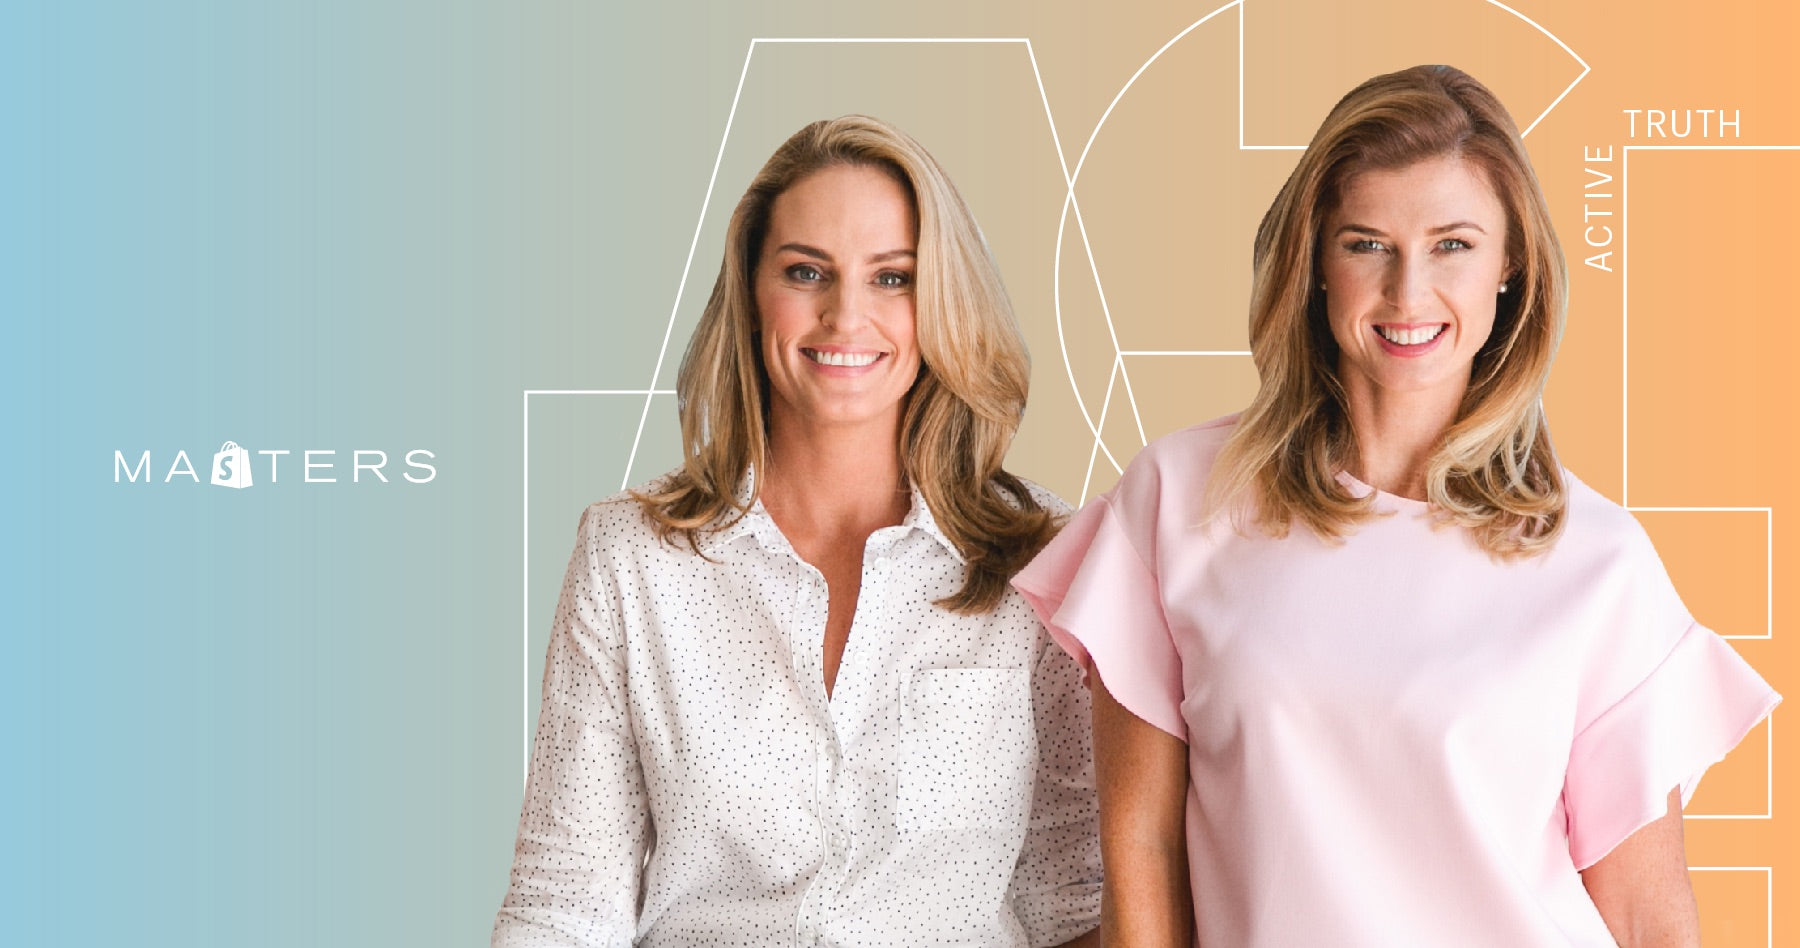 The Active Truth founders Nadia Tucker and Stevie Angel